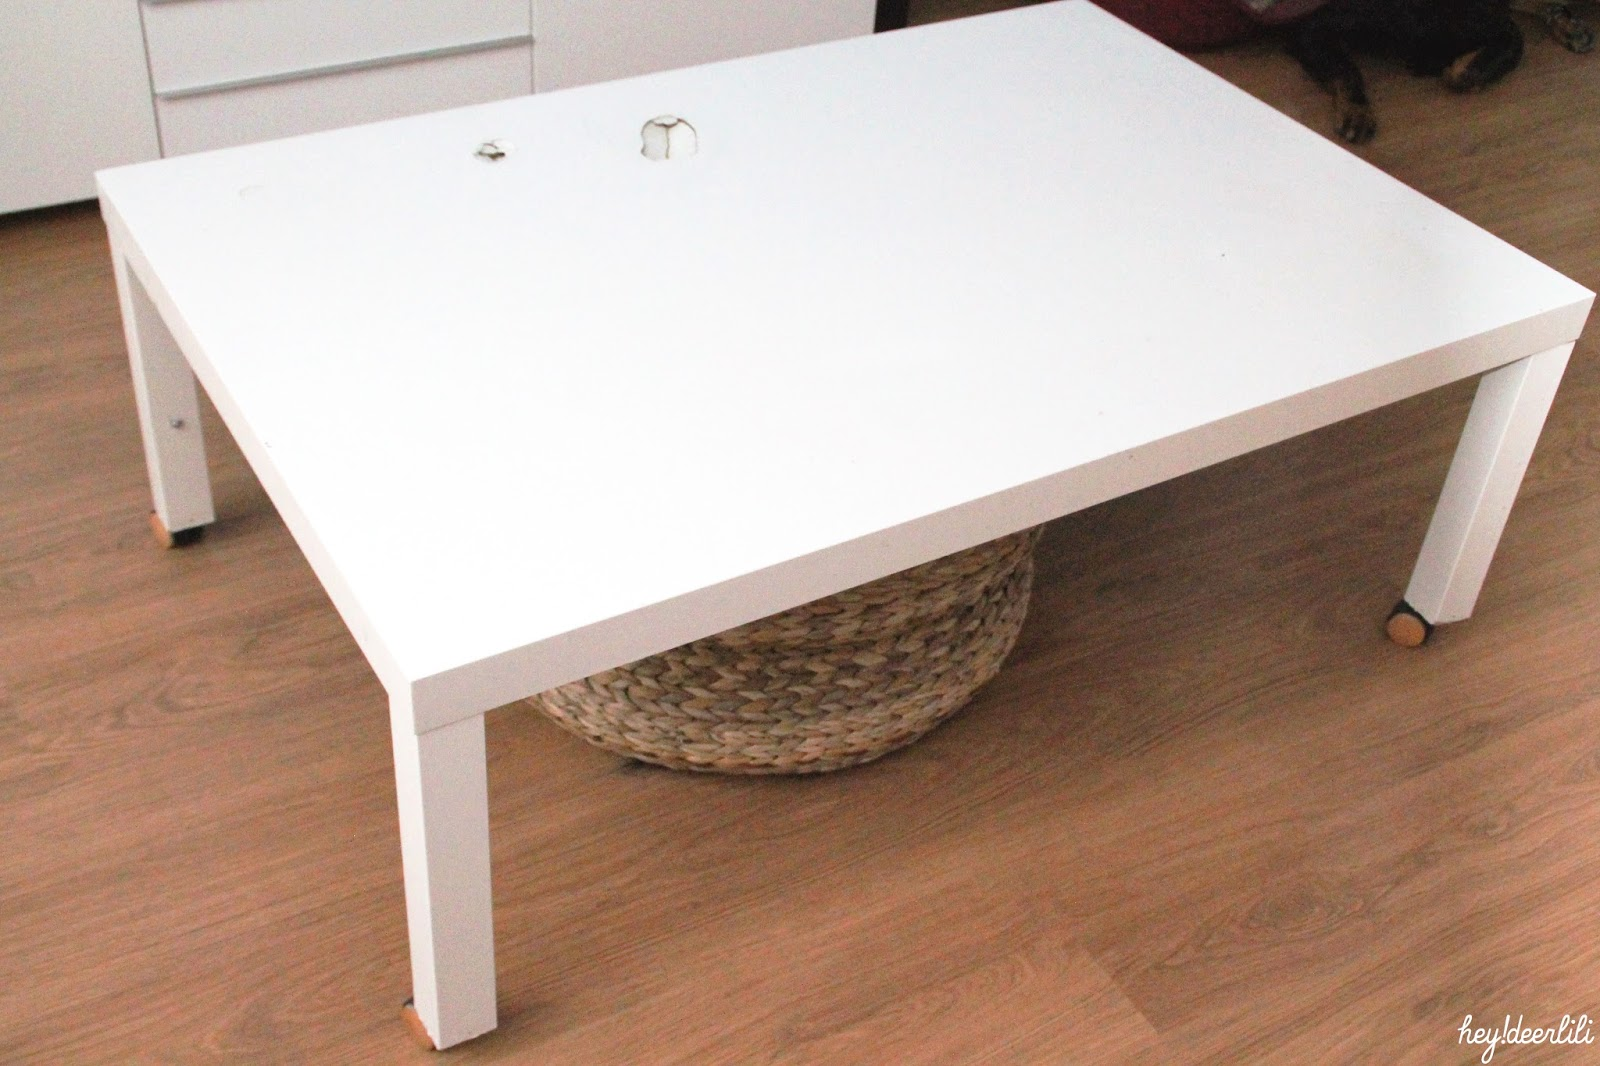 Hey deer lili retaper un basique la table basse ikea - Ikea table basse blanche ...